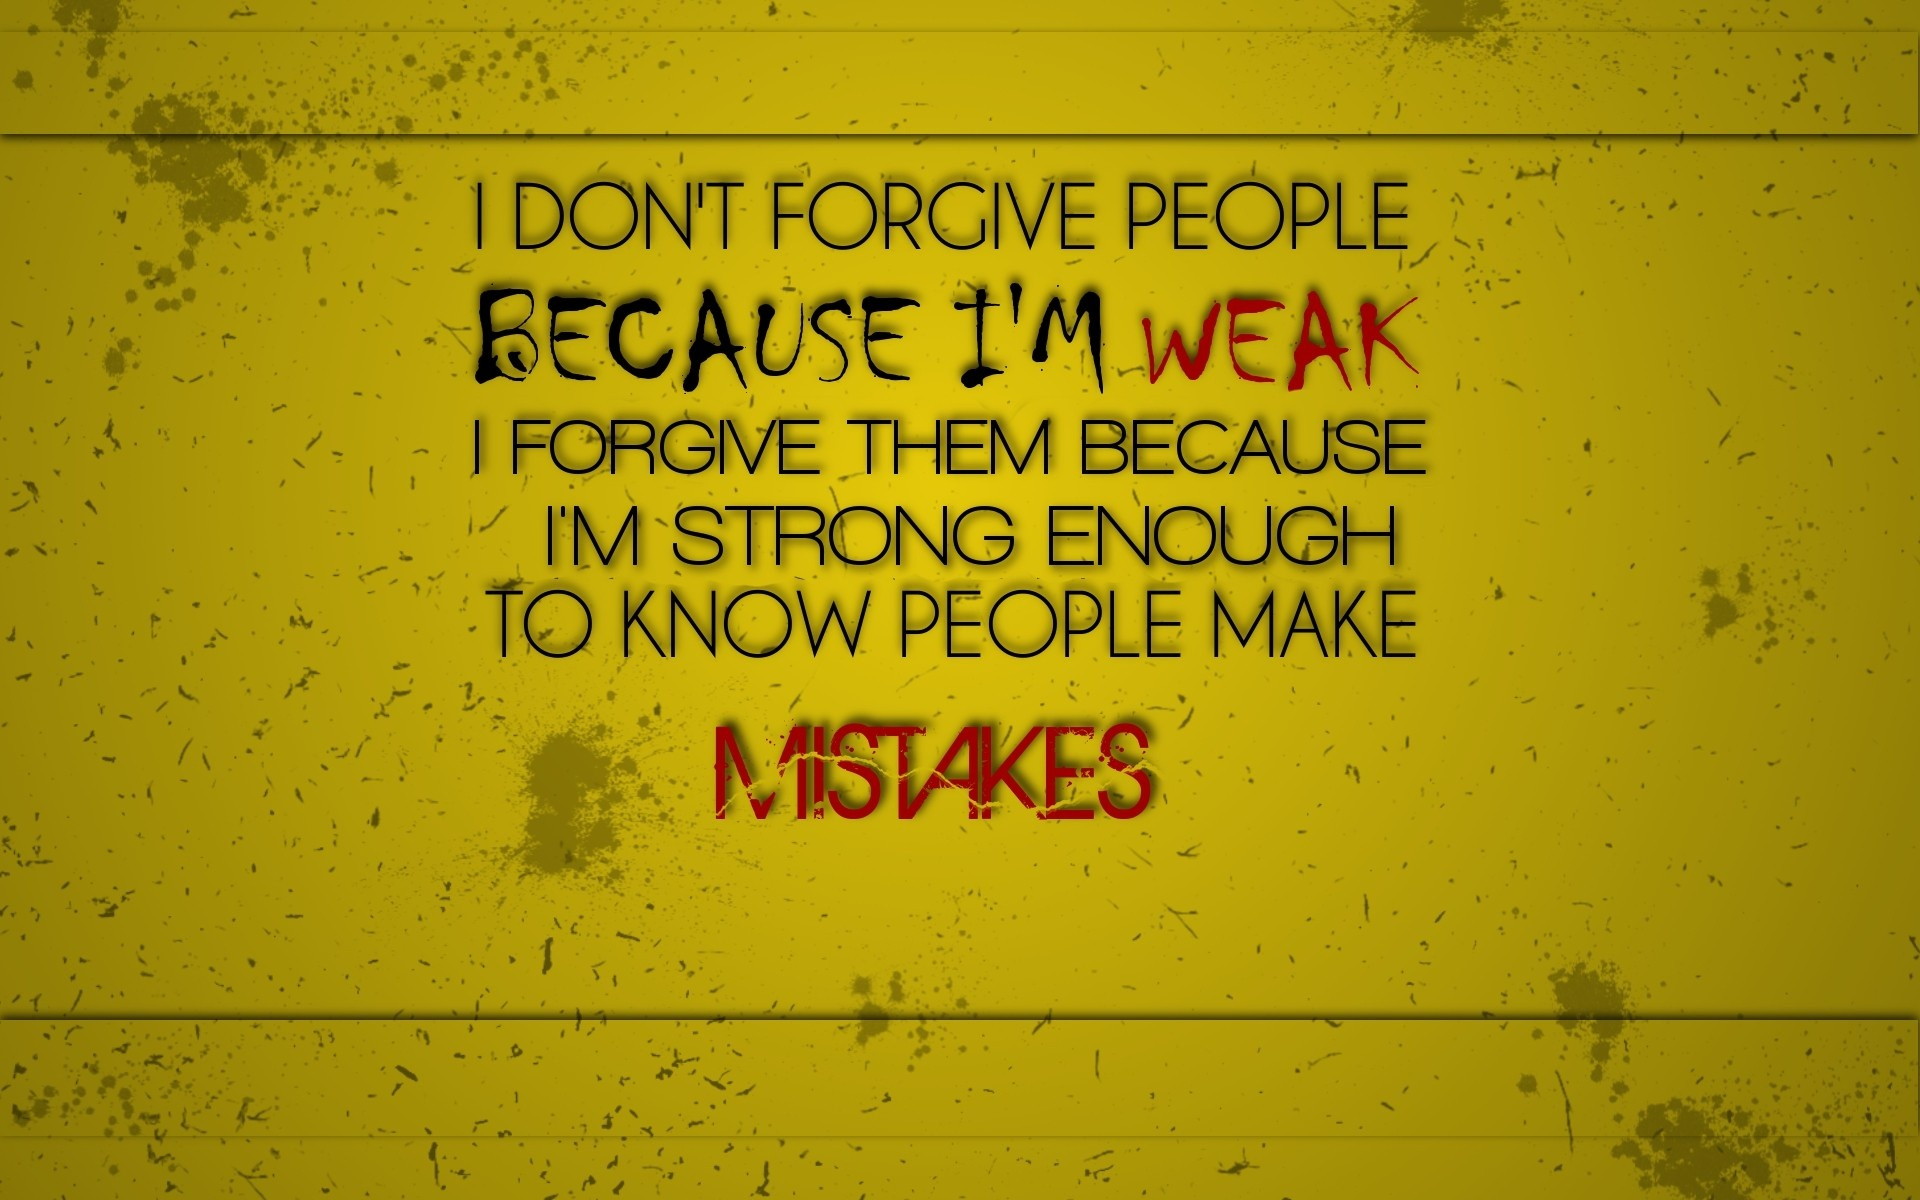 Meaningful Quotes Wallpapers - Hd Wallpapers With Meaningful Quotes - HD Wallpaper